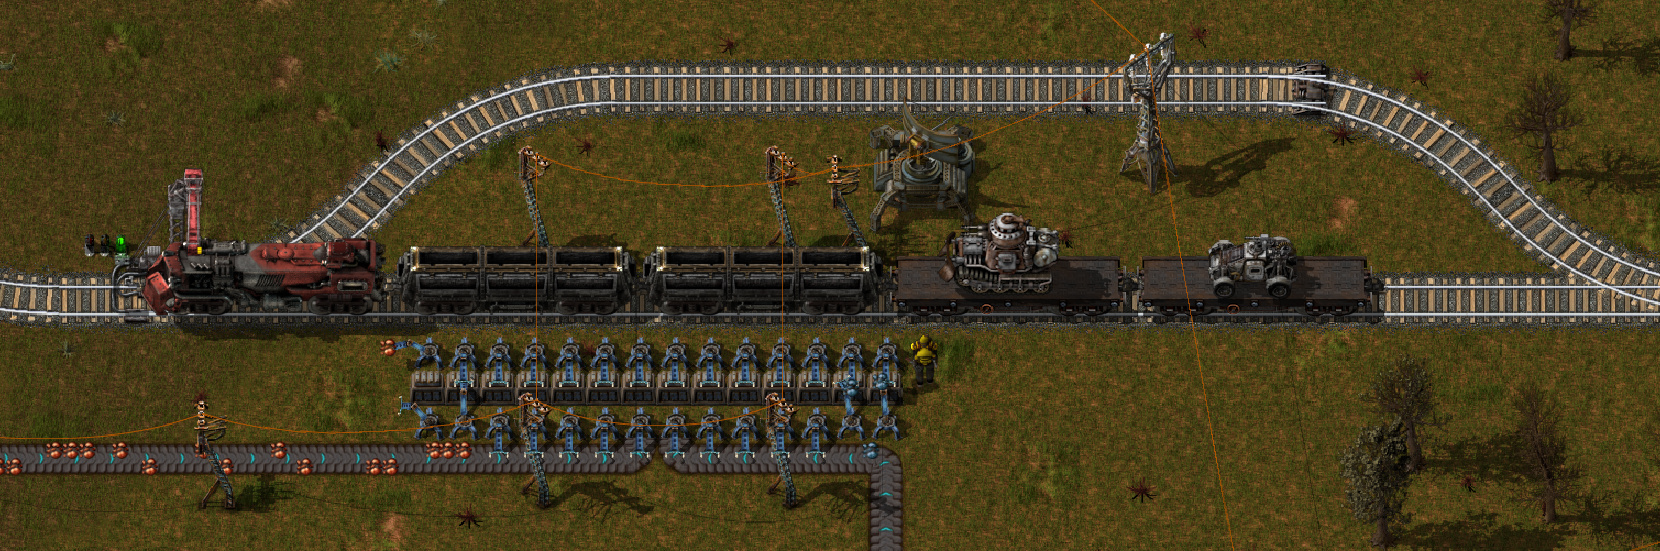 Vehicle Wagons.jpg